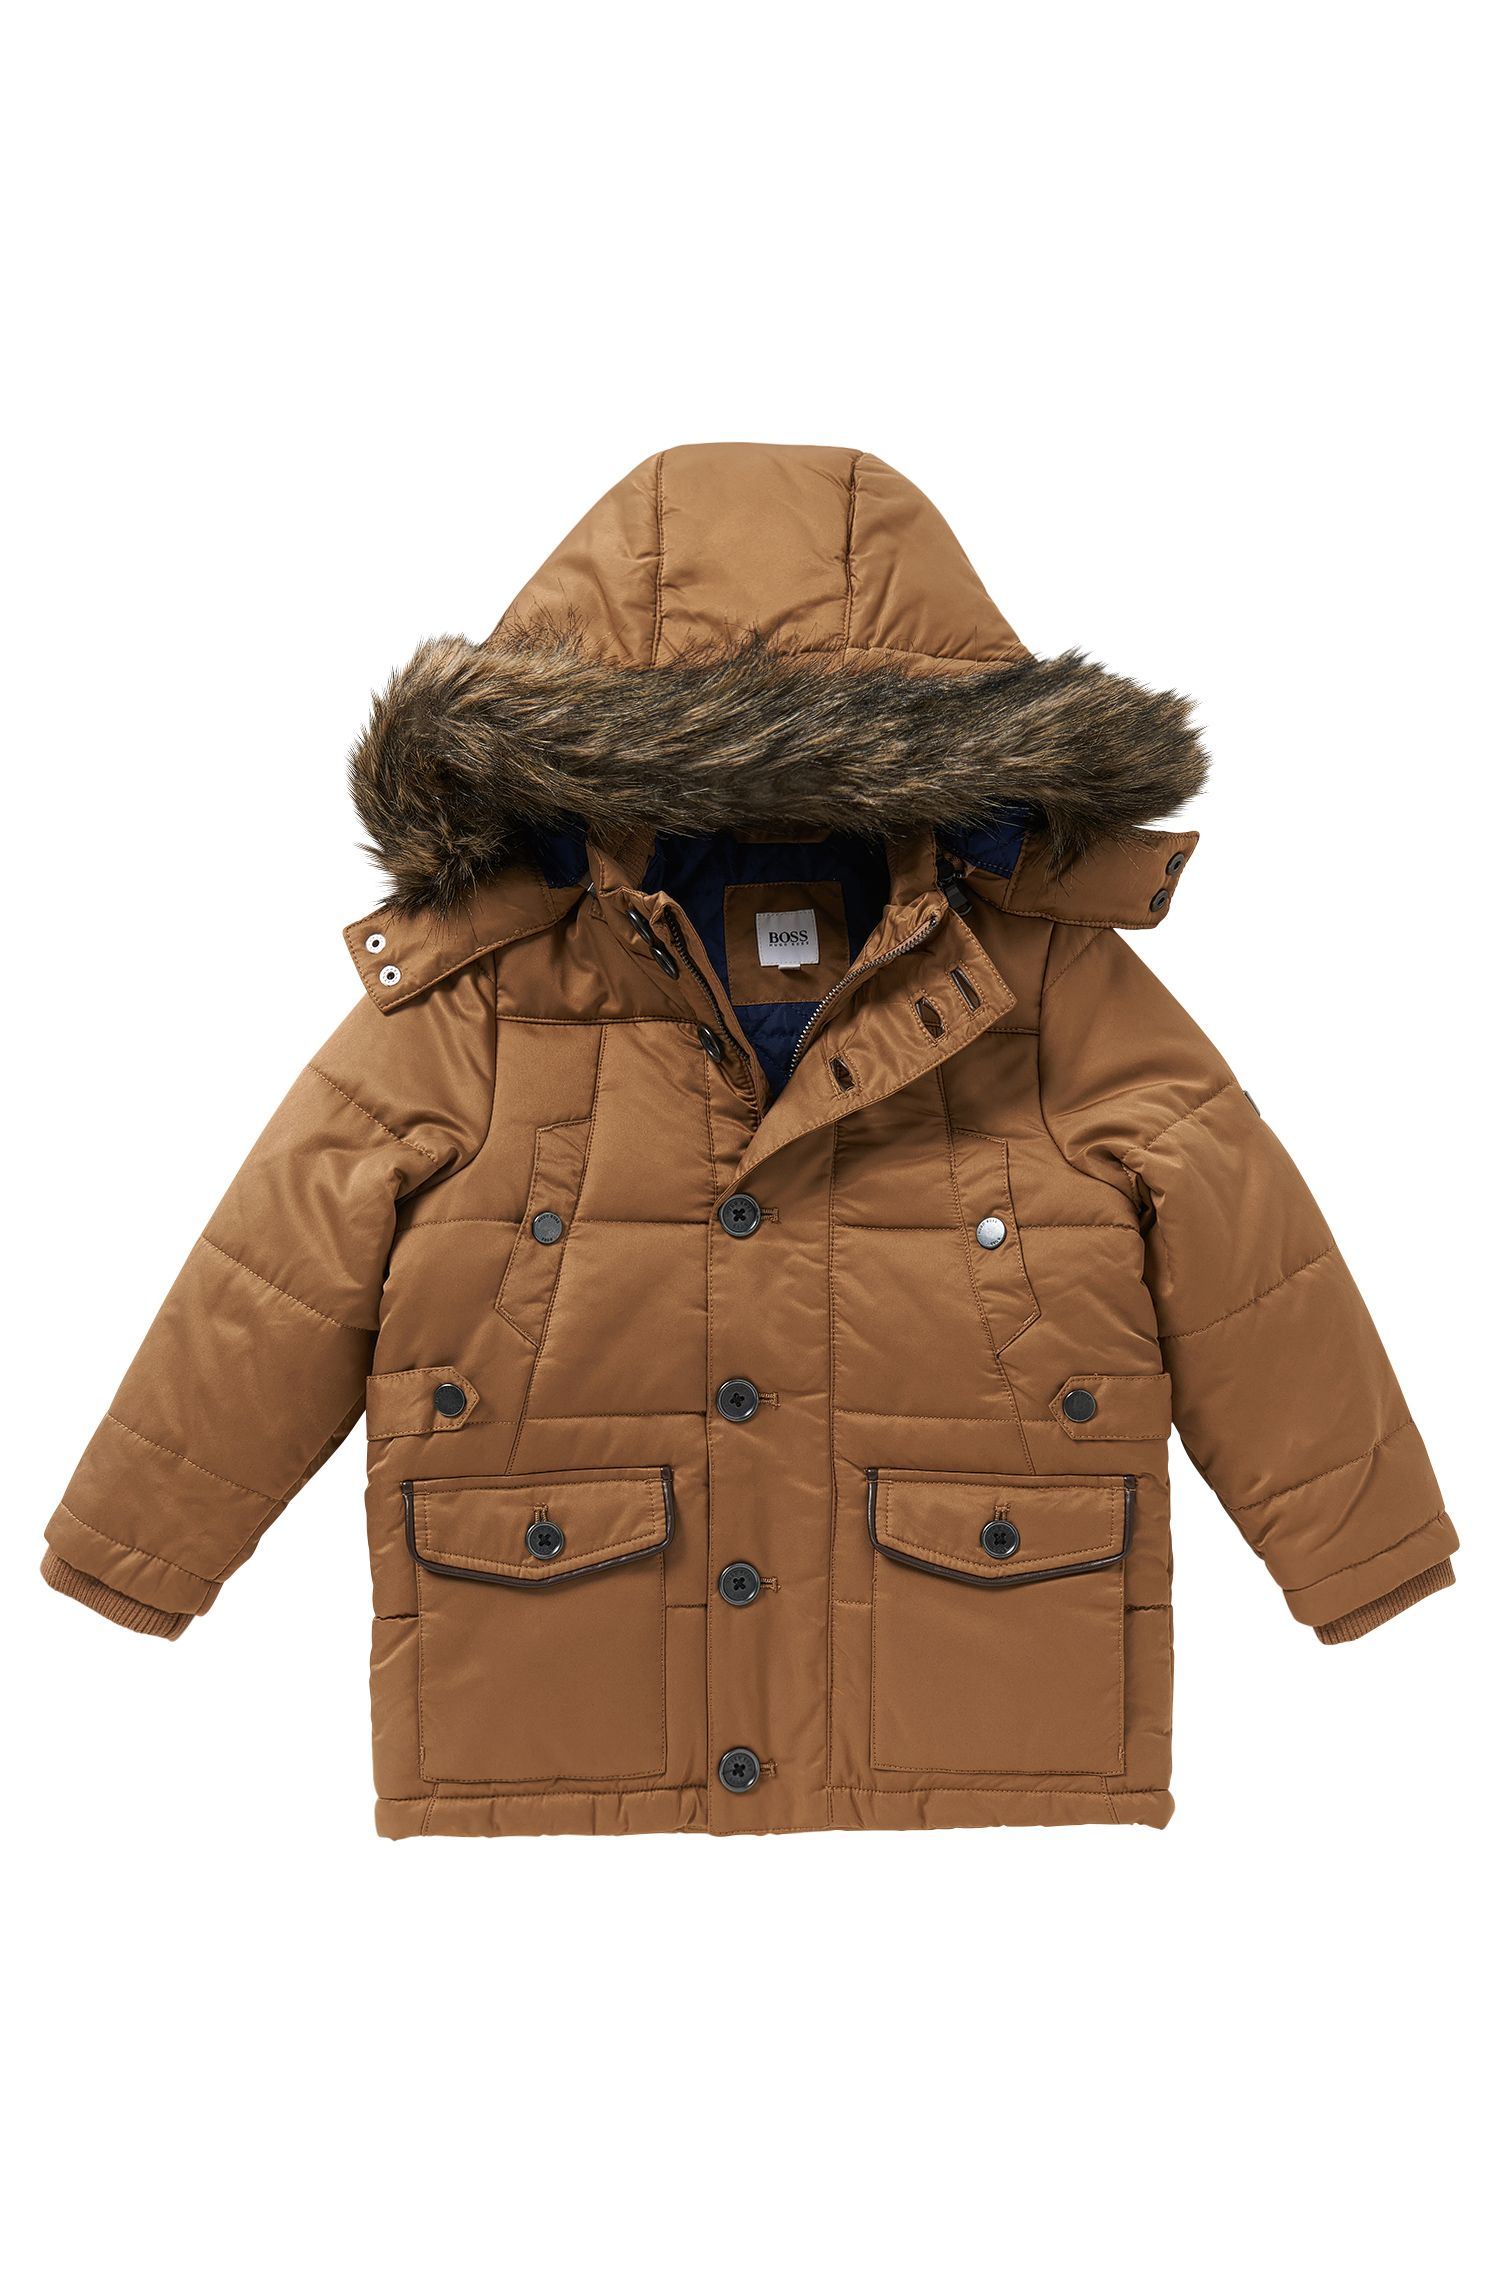 'J26255' | Boys Quilted Parka, Removable Hood